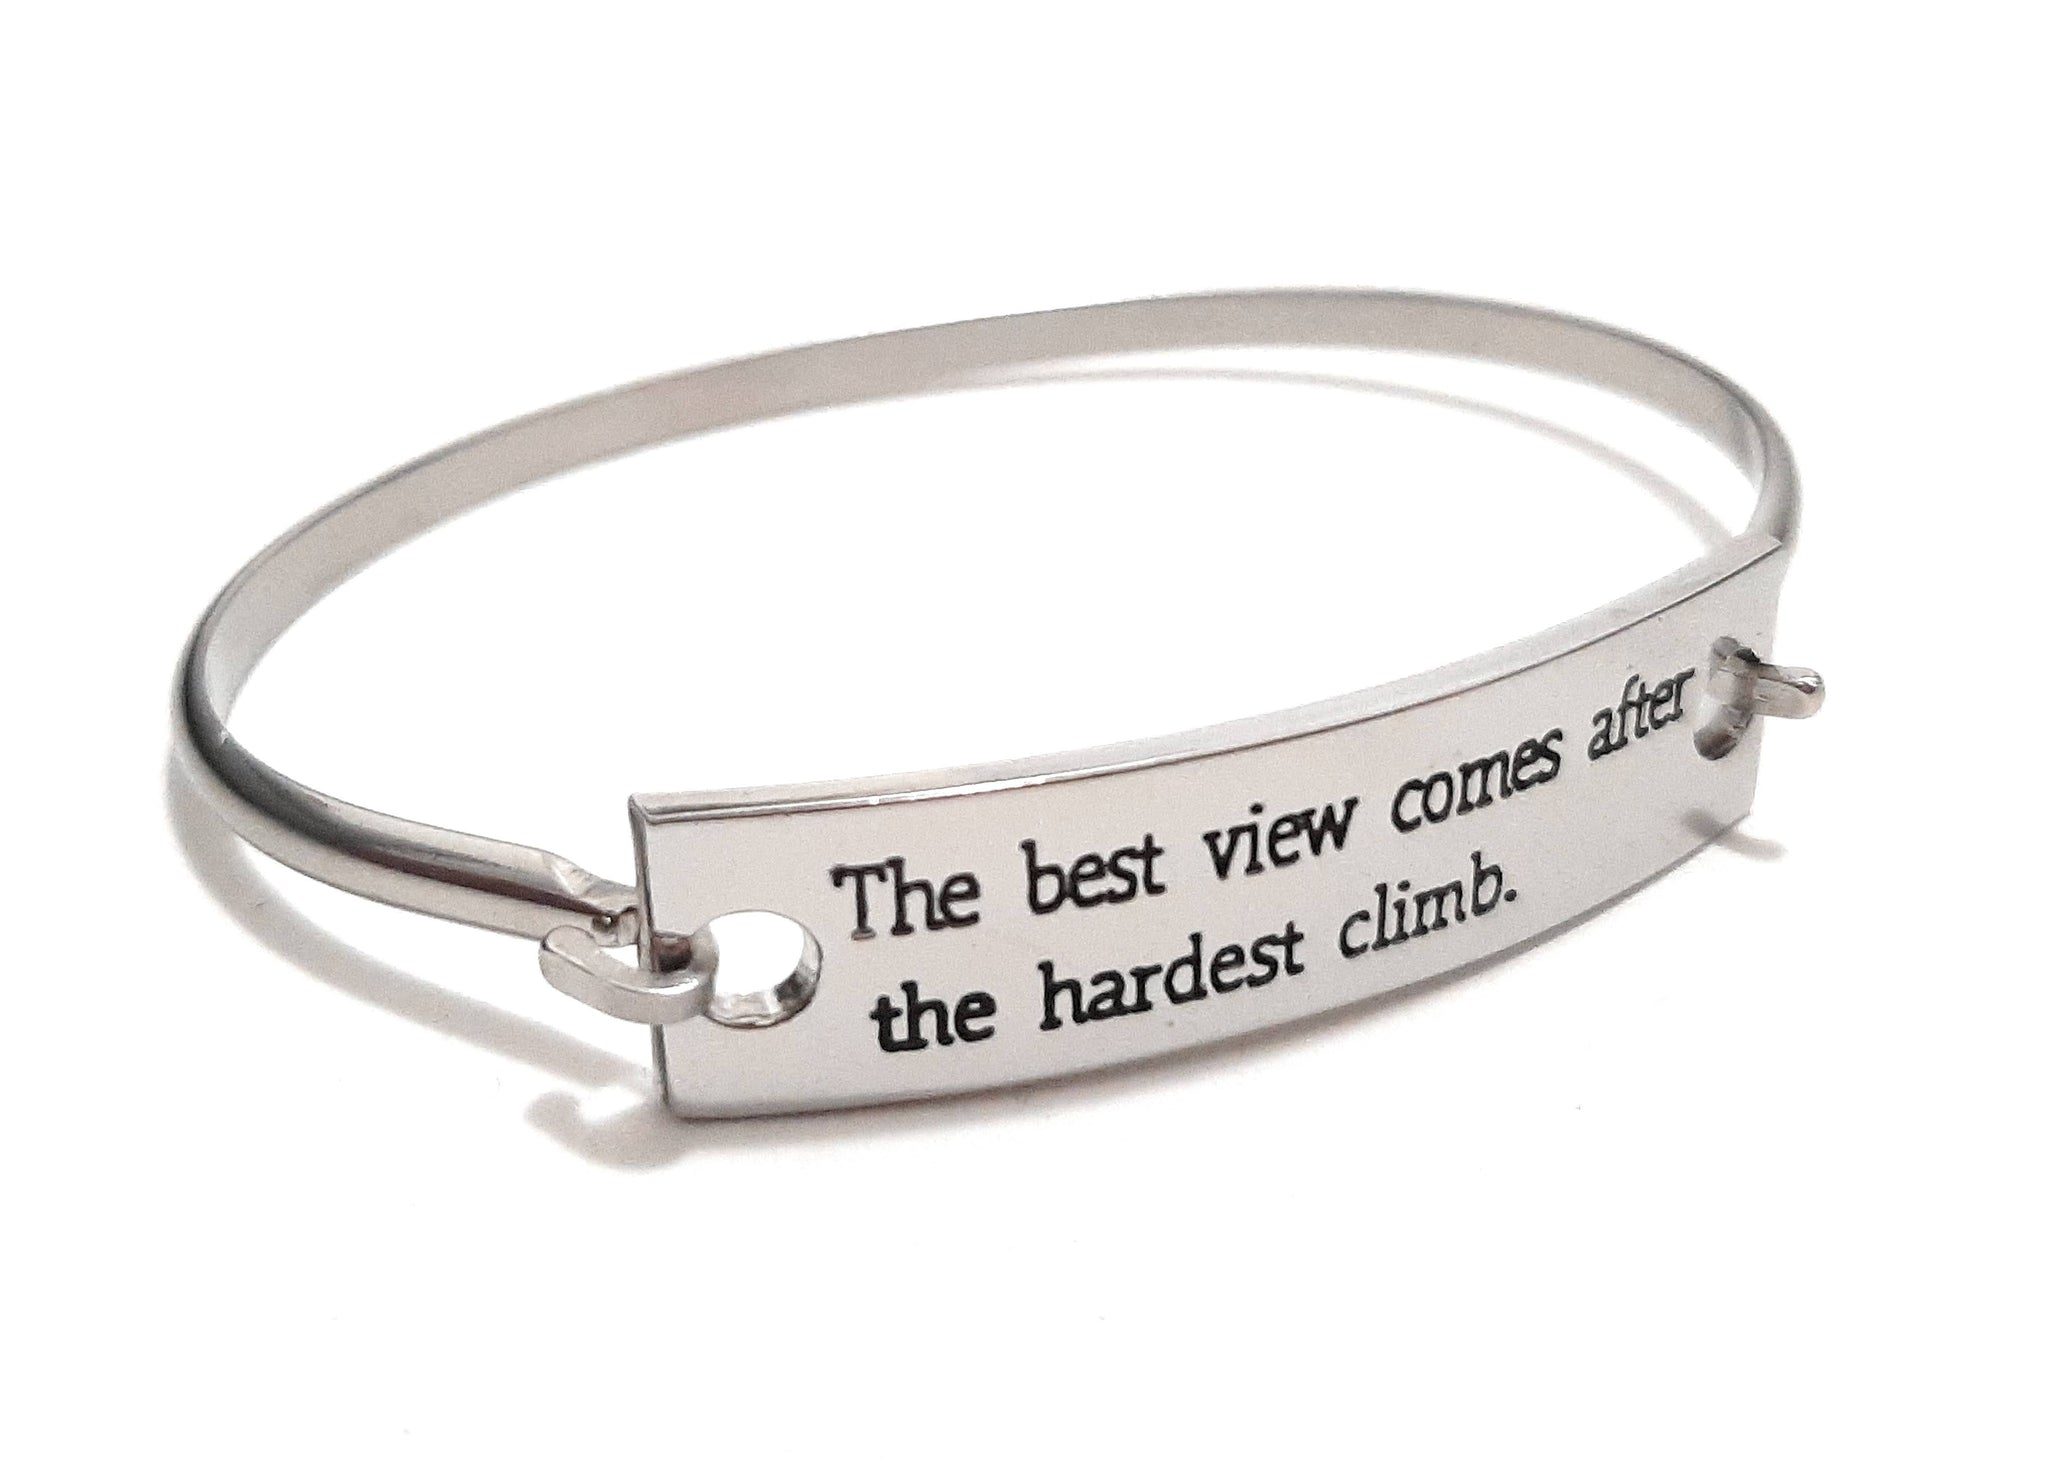 Stainless Steel Inspirational Message Connector Bangle Bracelet - The best view comes after the hardest climb